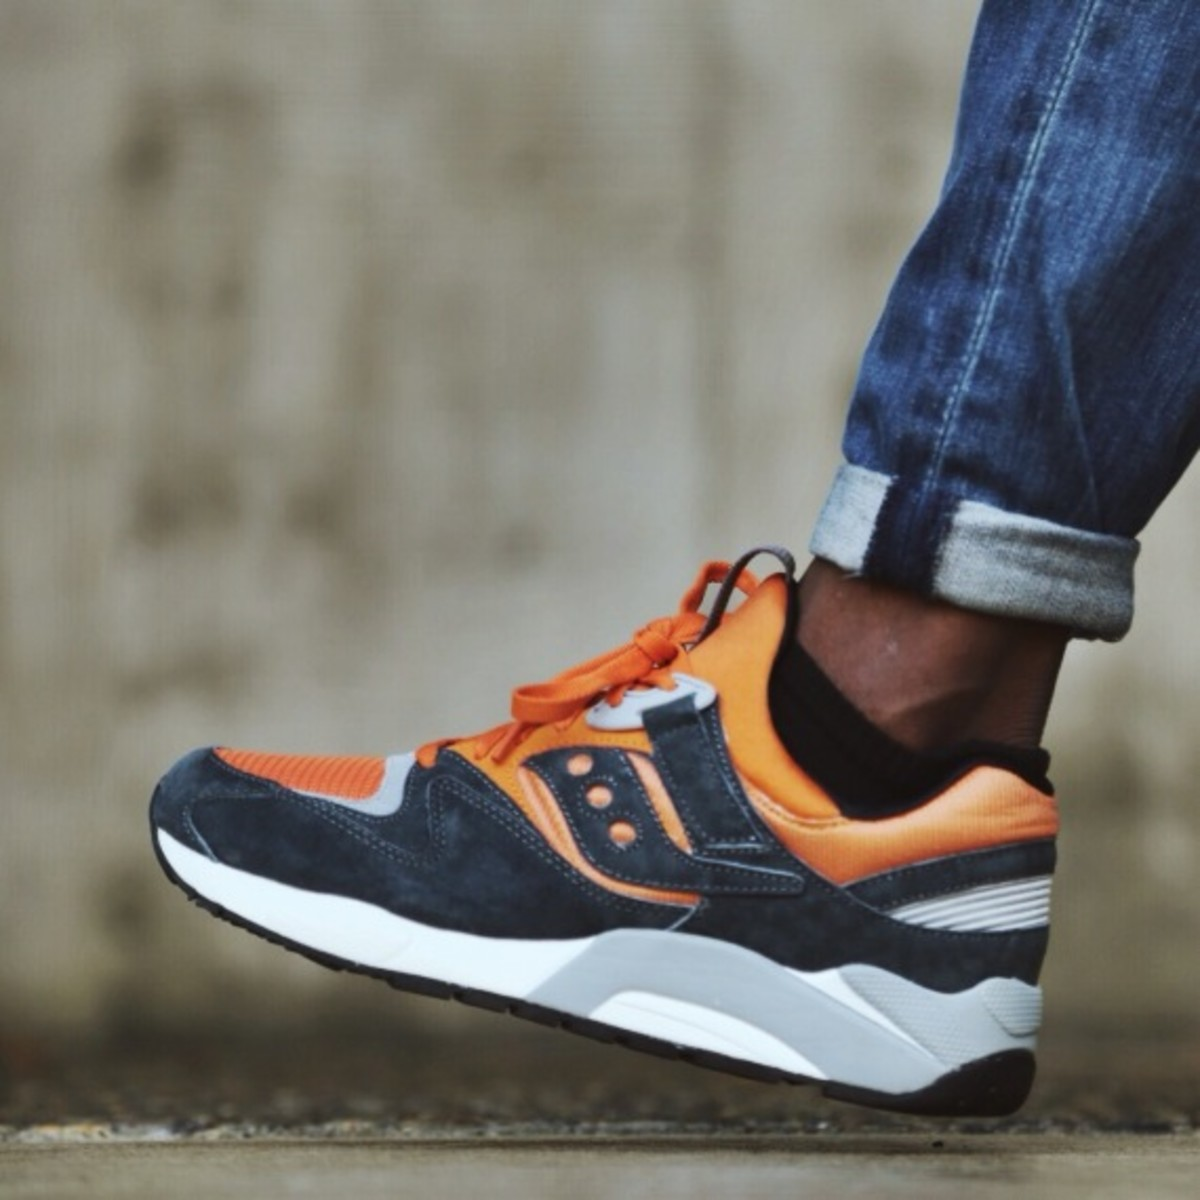 saucony-grid-9000-spice-pack-06